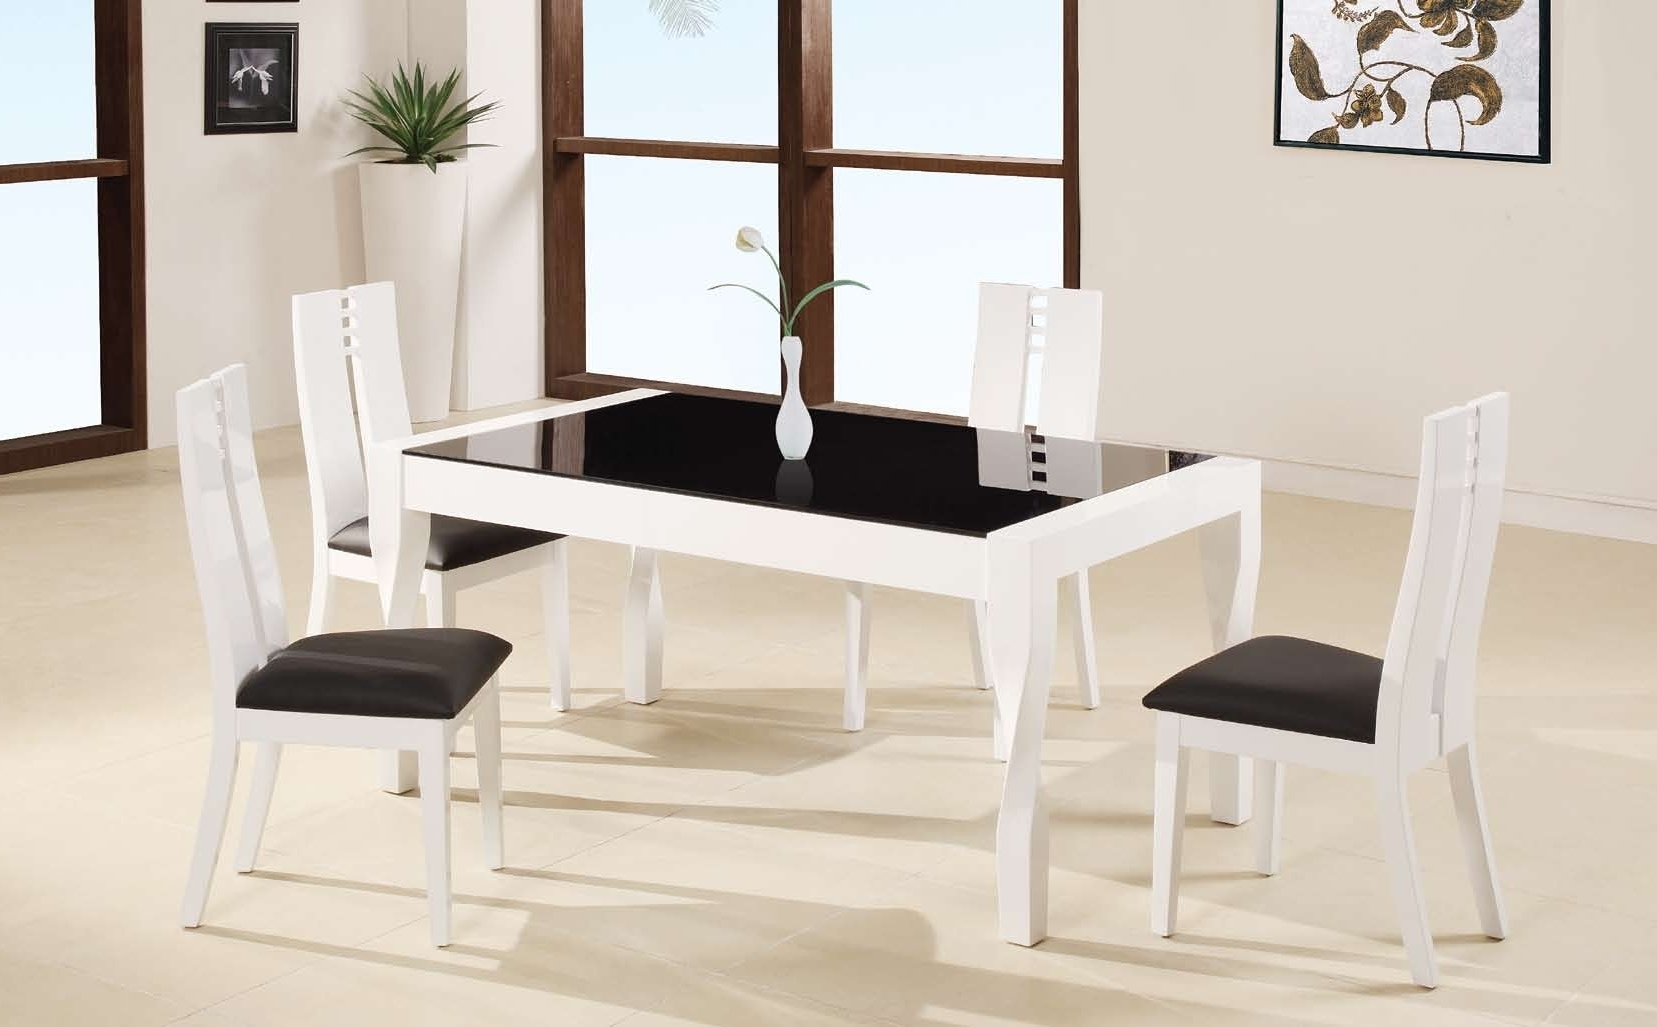 Cream Lacquer Dining Tables With Recent White Lacquer Teak Wood Dining Table Using Black Glass Top Placed On (View 9 of 25)